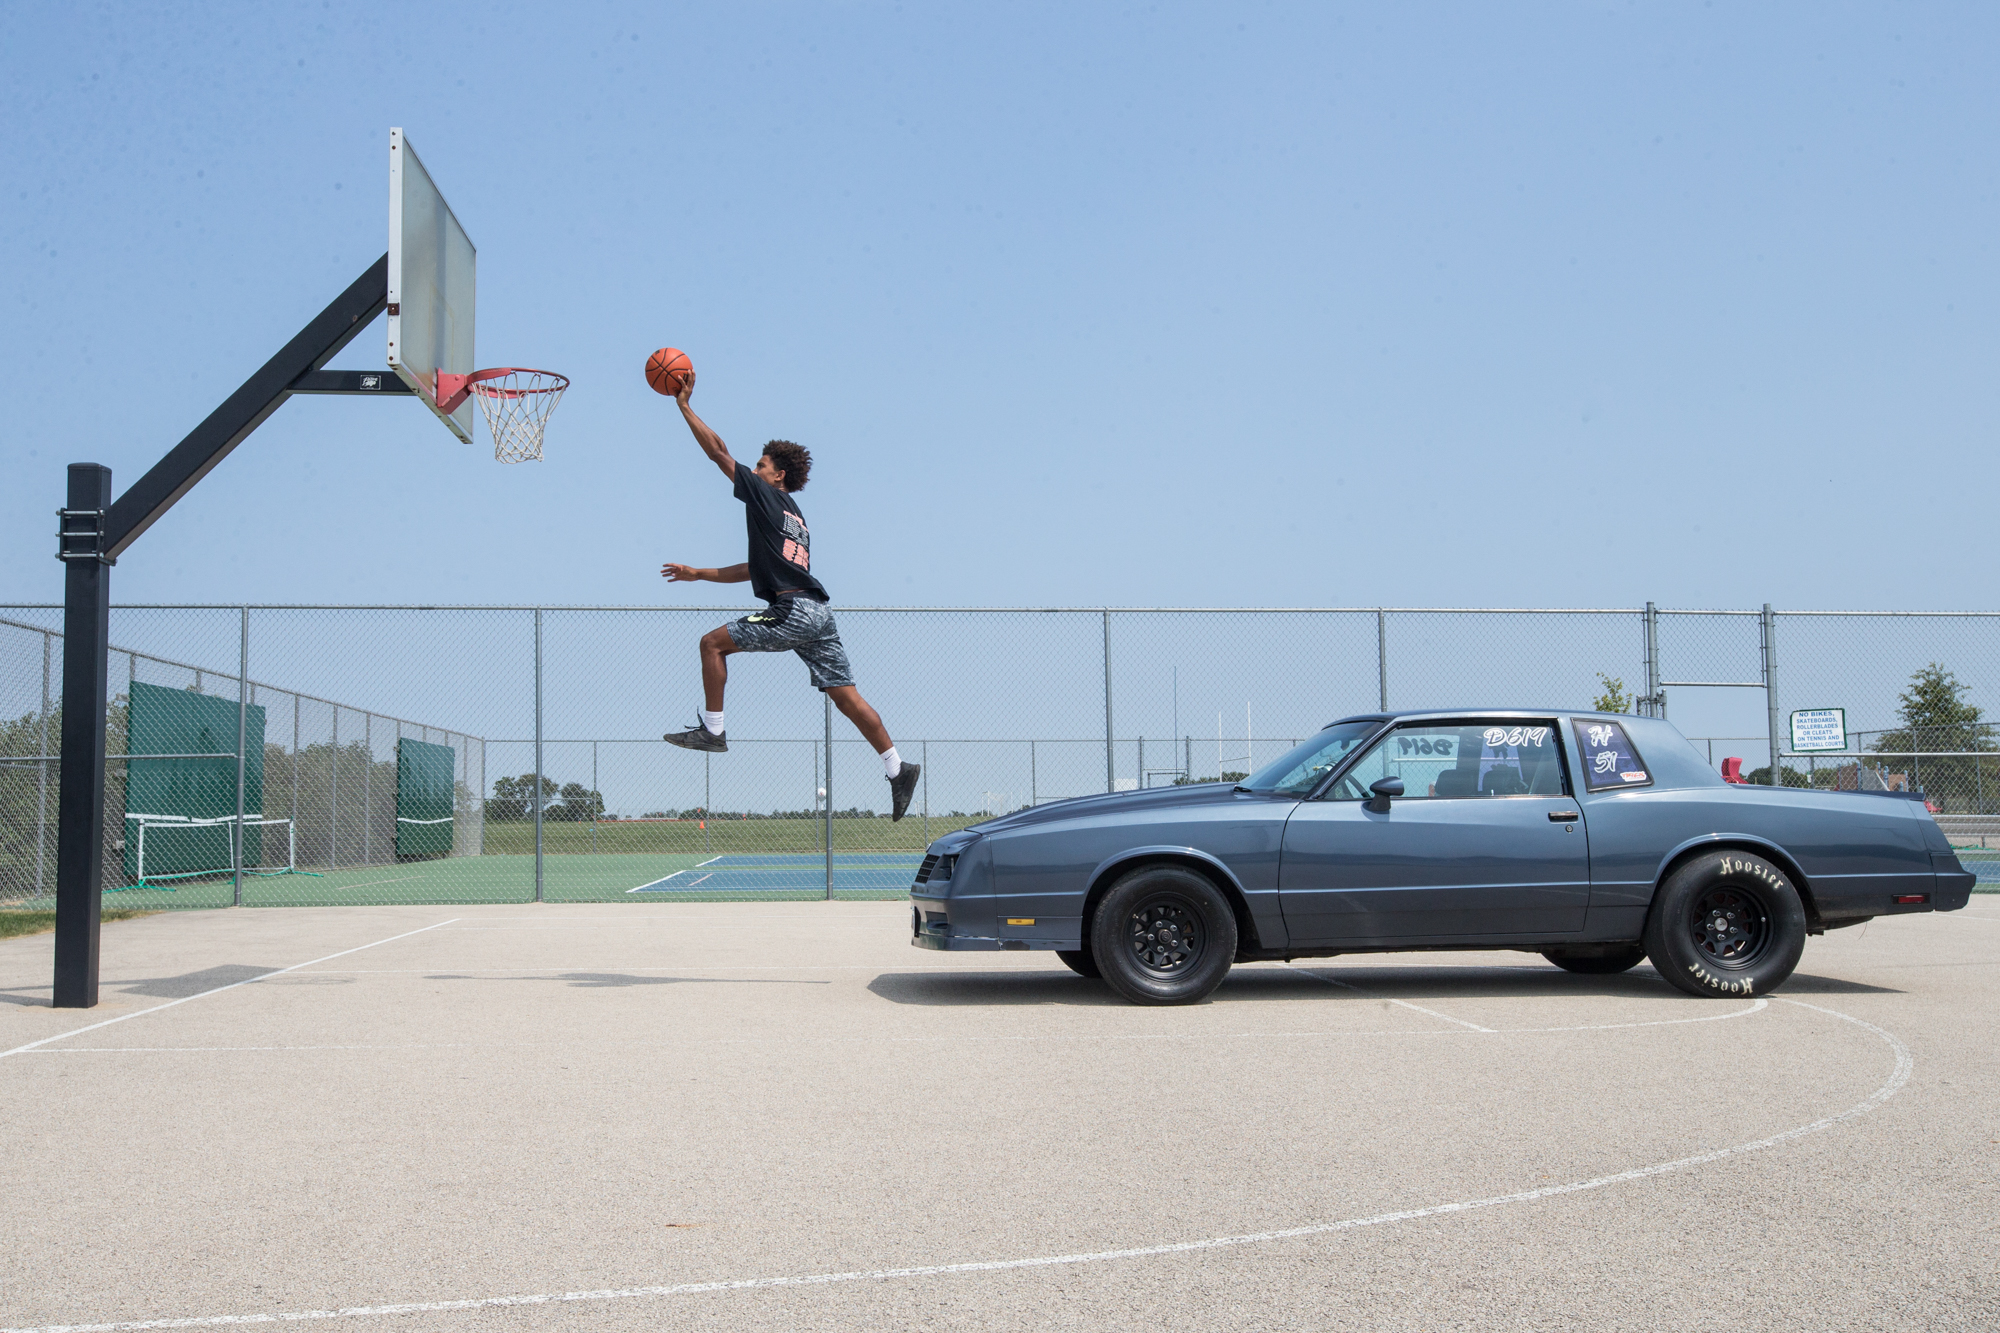 TC Williams, who plays basketball for Winnebago High School and also drag races at the Byron Dragway, poses for a portrait on Friday, Aug. 3, 2018, at a Winnebago Park District basketball court in Winnebago. [SCOTT P. YATES/RRSTAR.COM STAFF]